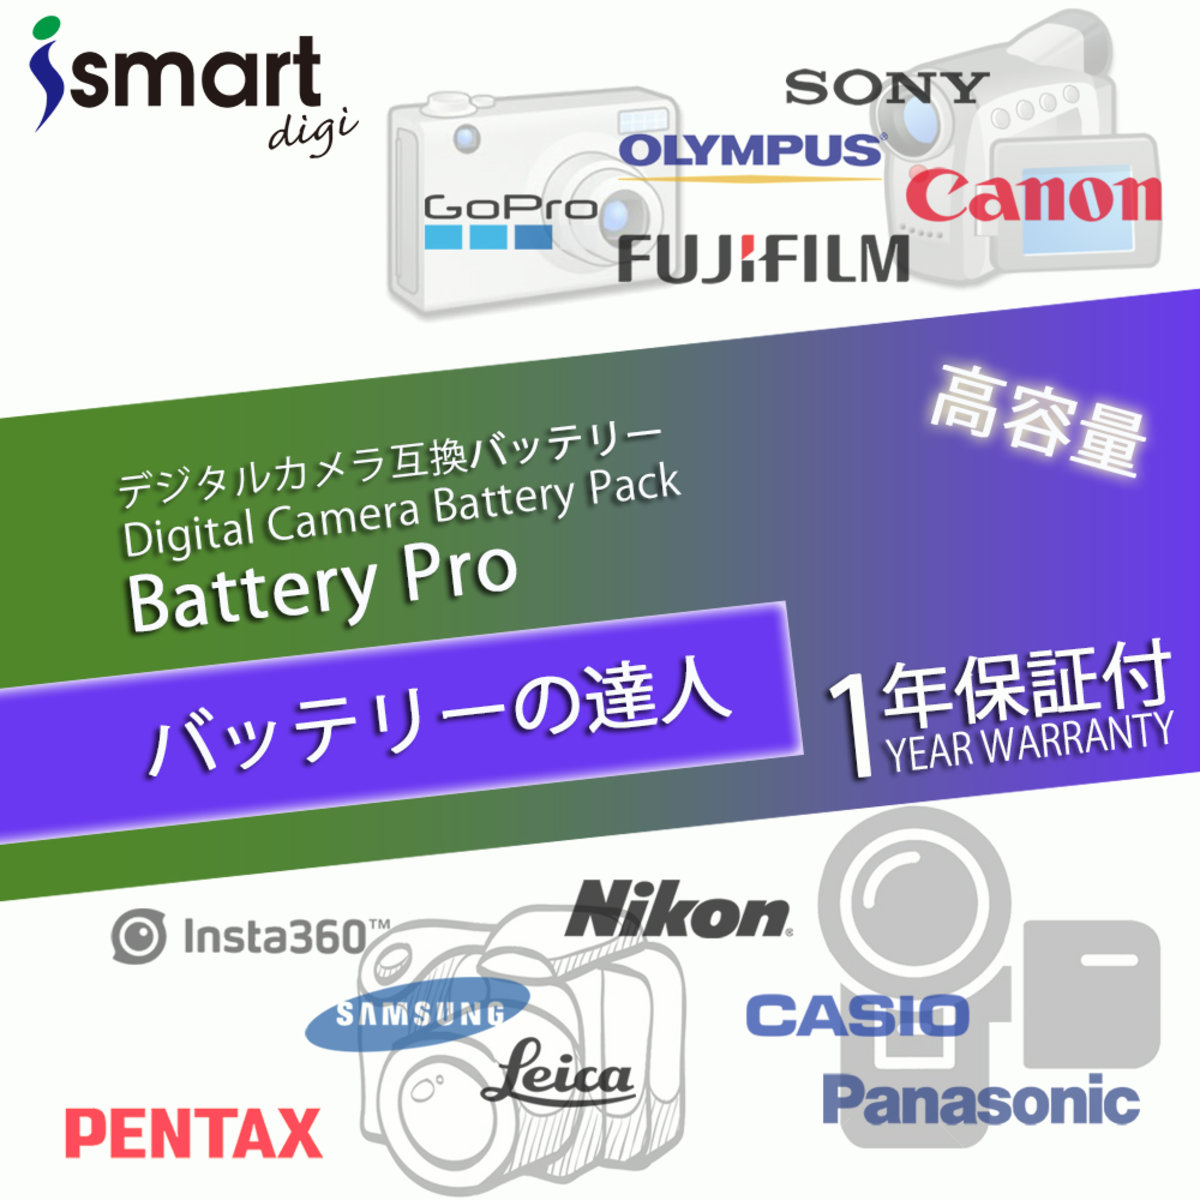 Sony Digital Camera Battery (For:DSC-RX1,RX100, WX300 ,DSC-HX300 ,DSC-RX100 II ,III,V,RX1R II, DSC-RX1R,DSC-HX50V, HX80 ,FDR-X3000)